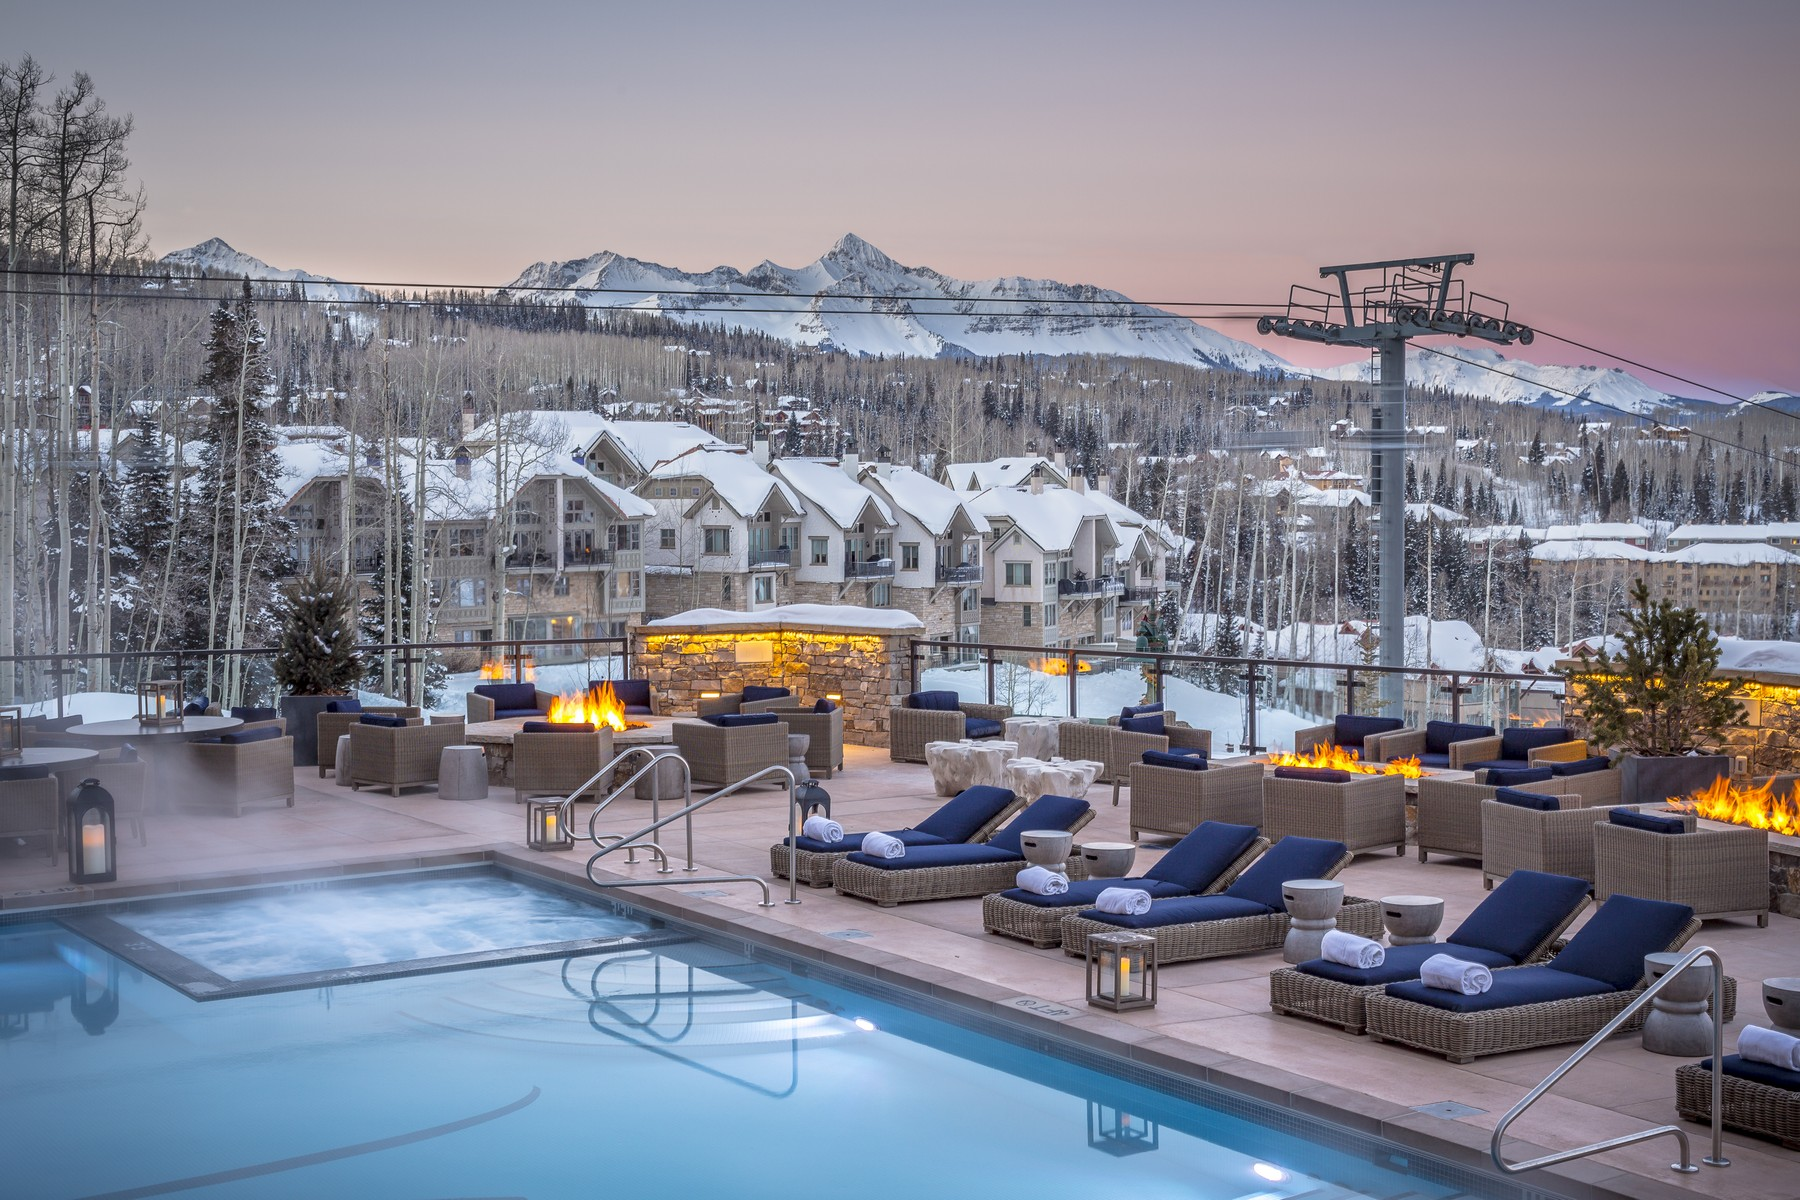 Condominium for Sale at Residence 703, Madeline Hotel & Residences 568 Mountain Village Boulevard, Residence 703 Telluride, Colorado, 81435 United States